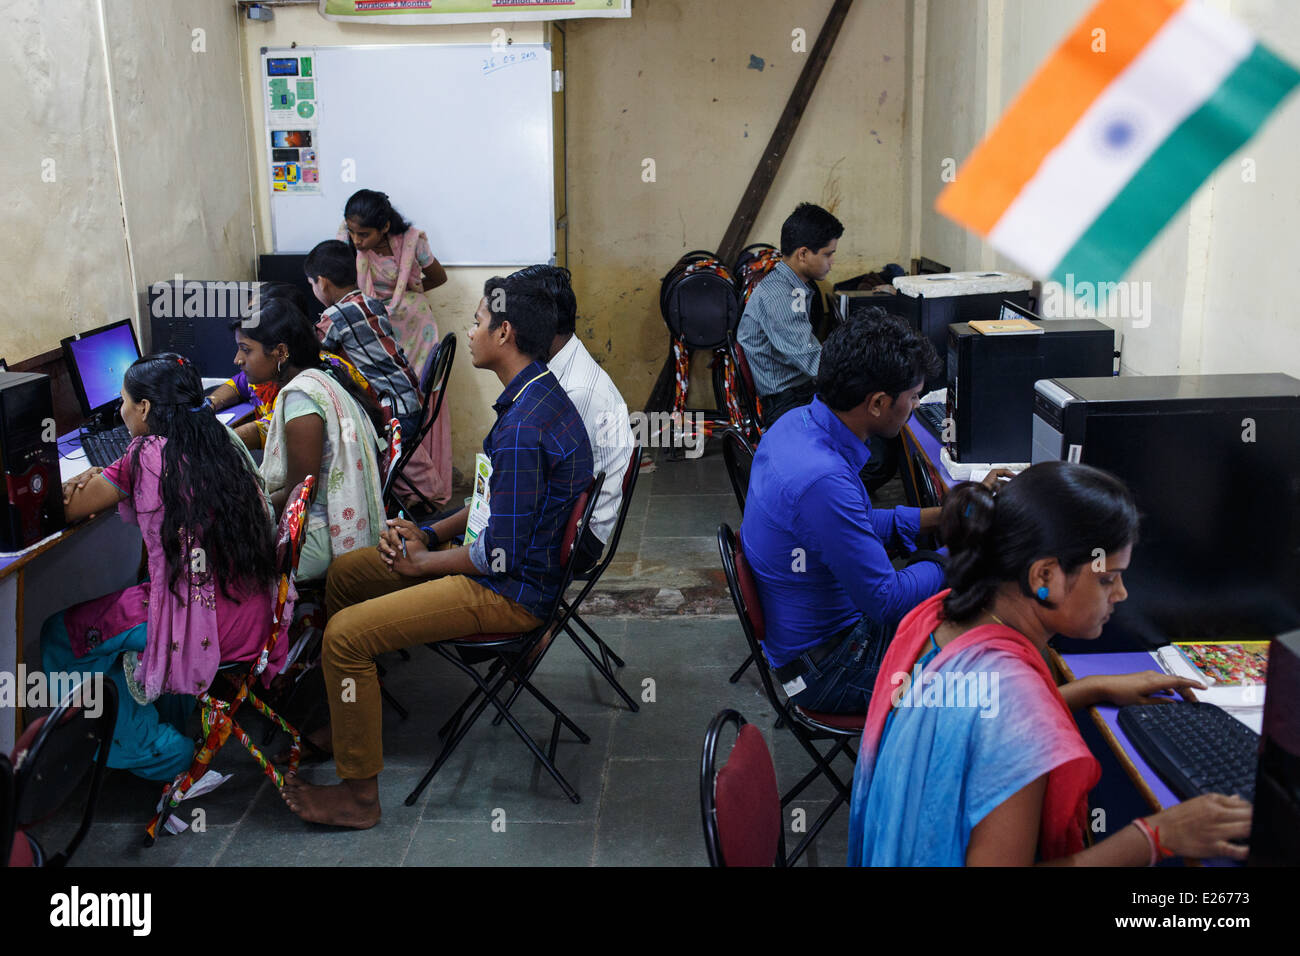 A computer literacy class run by a local NGO for adults in Kandivali area of Mumbai, India. - Stock Image